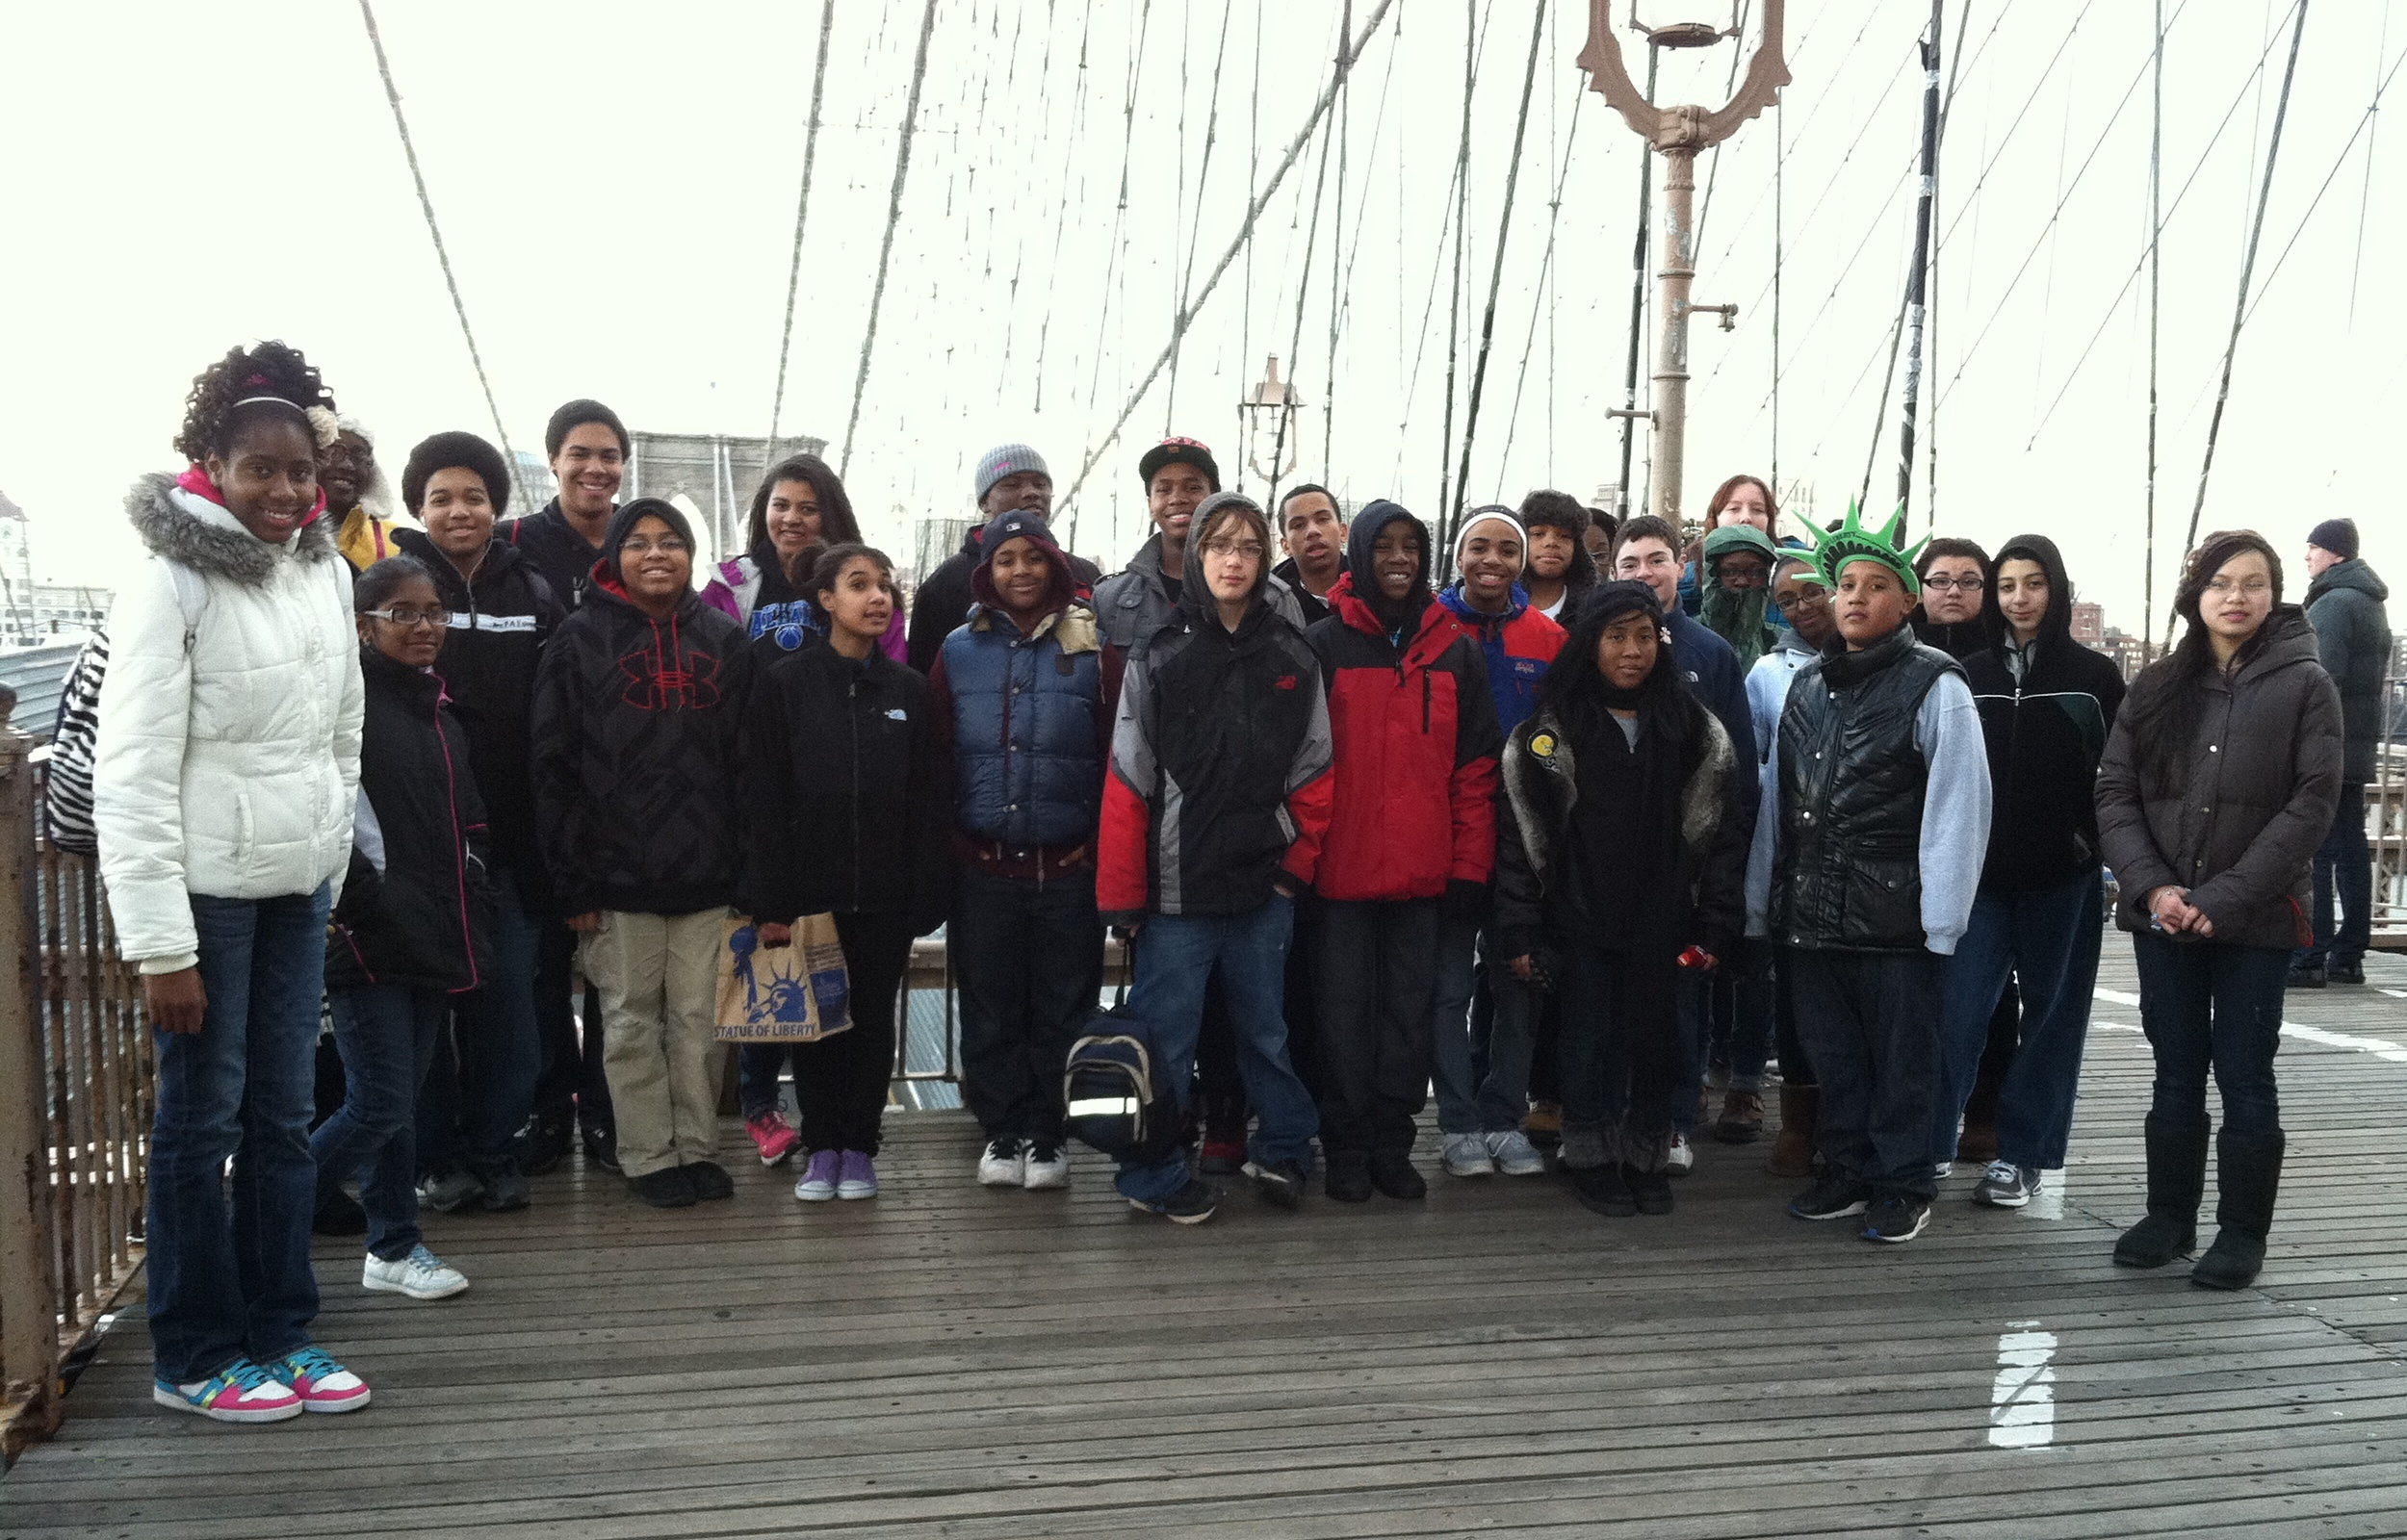 RPI STEP students at the Brooklyn Bridge in New York City, February 25, 2012, at the beginning of the Engineering Lower Manhattan program.